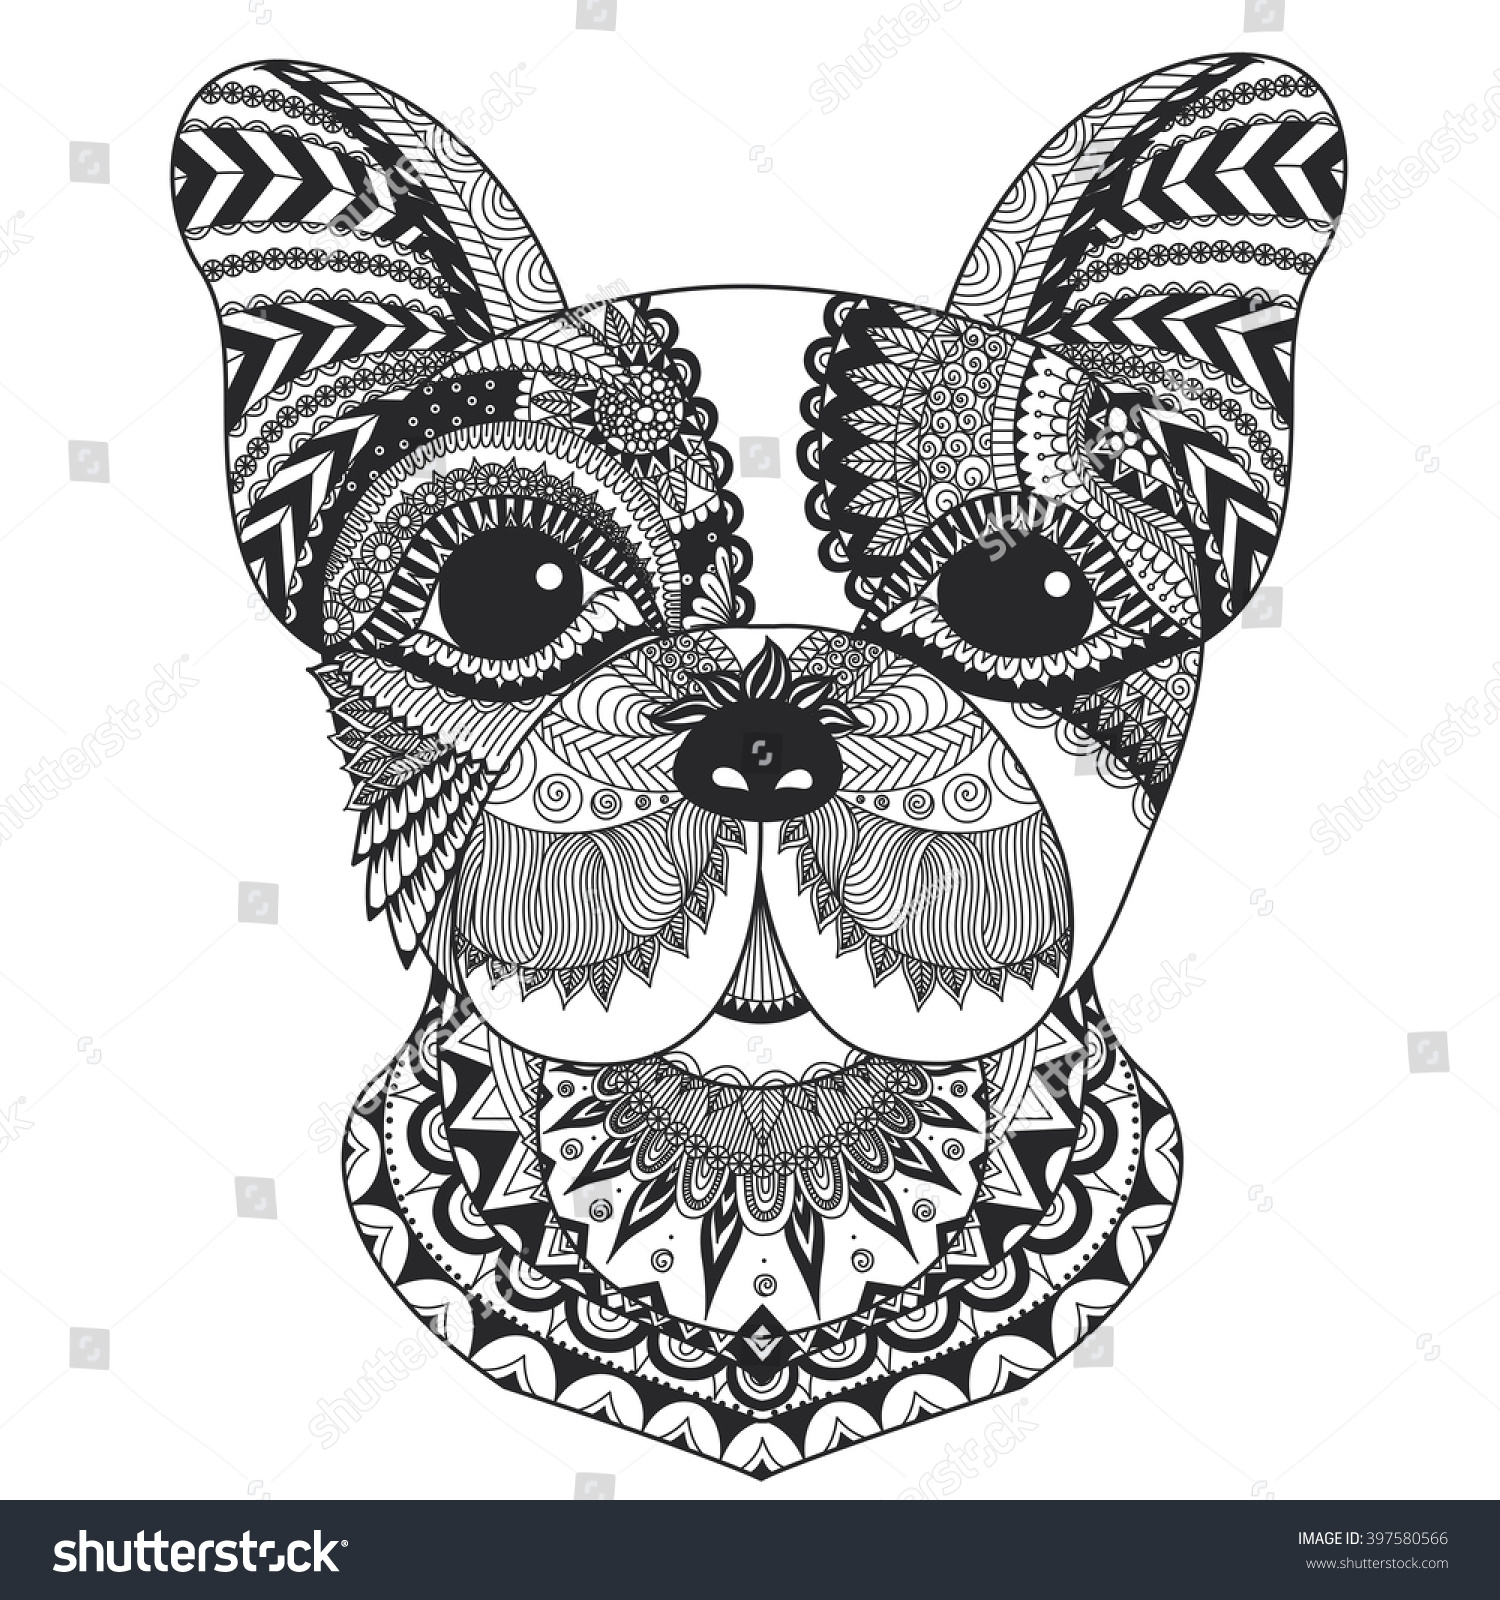 The coloring book clean - French Bulldog Zentangle Styled With Clean Lines For Coloring Book For Anti Stress T